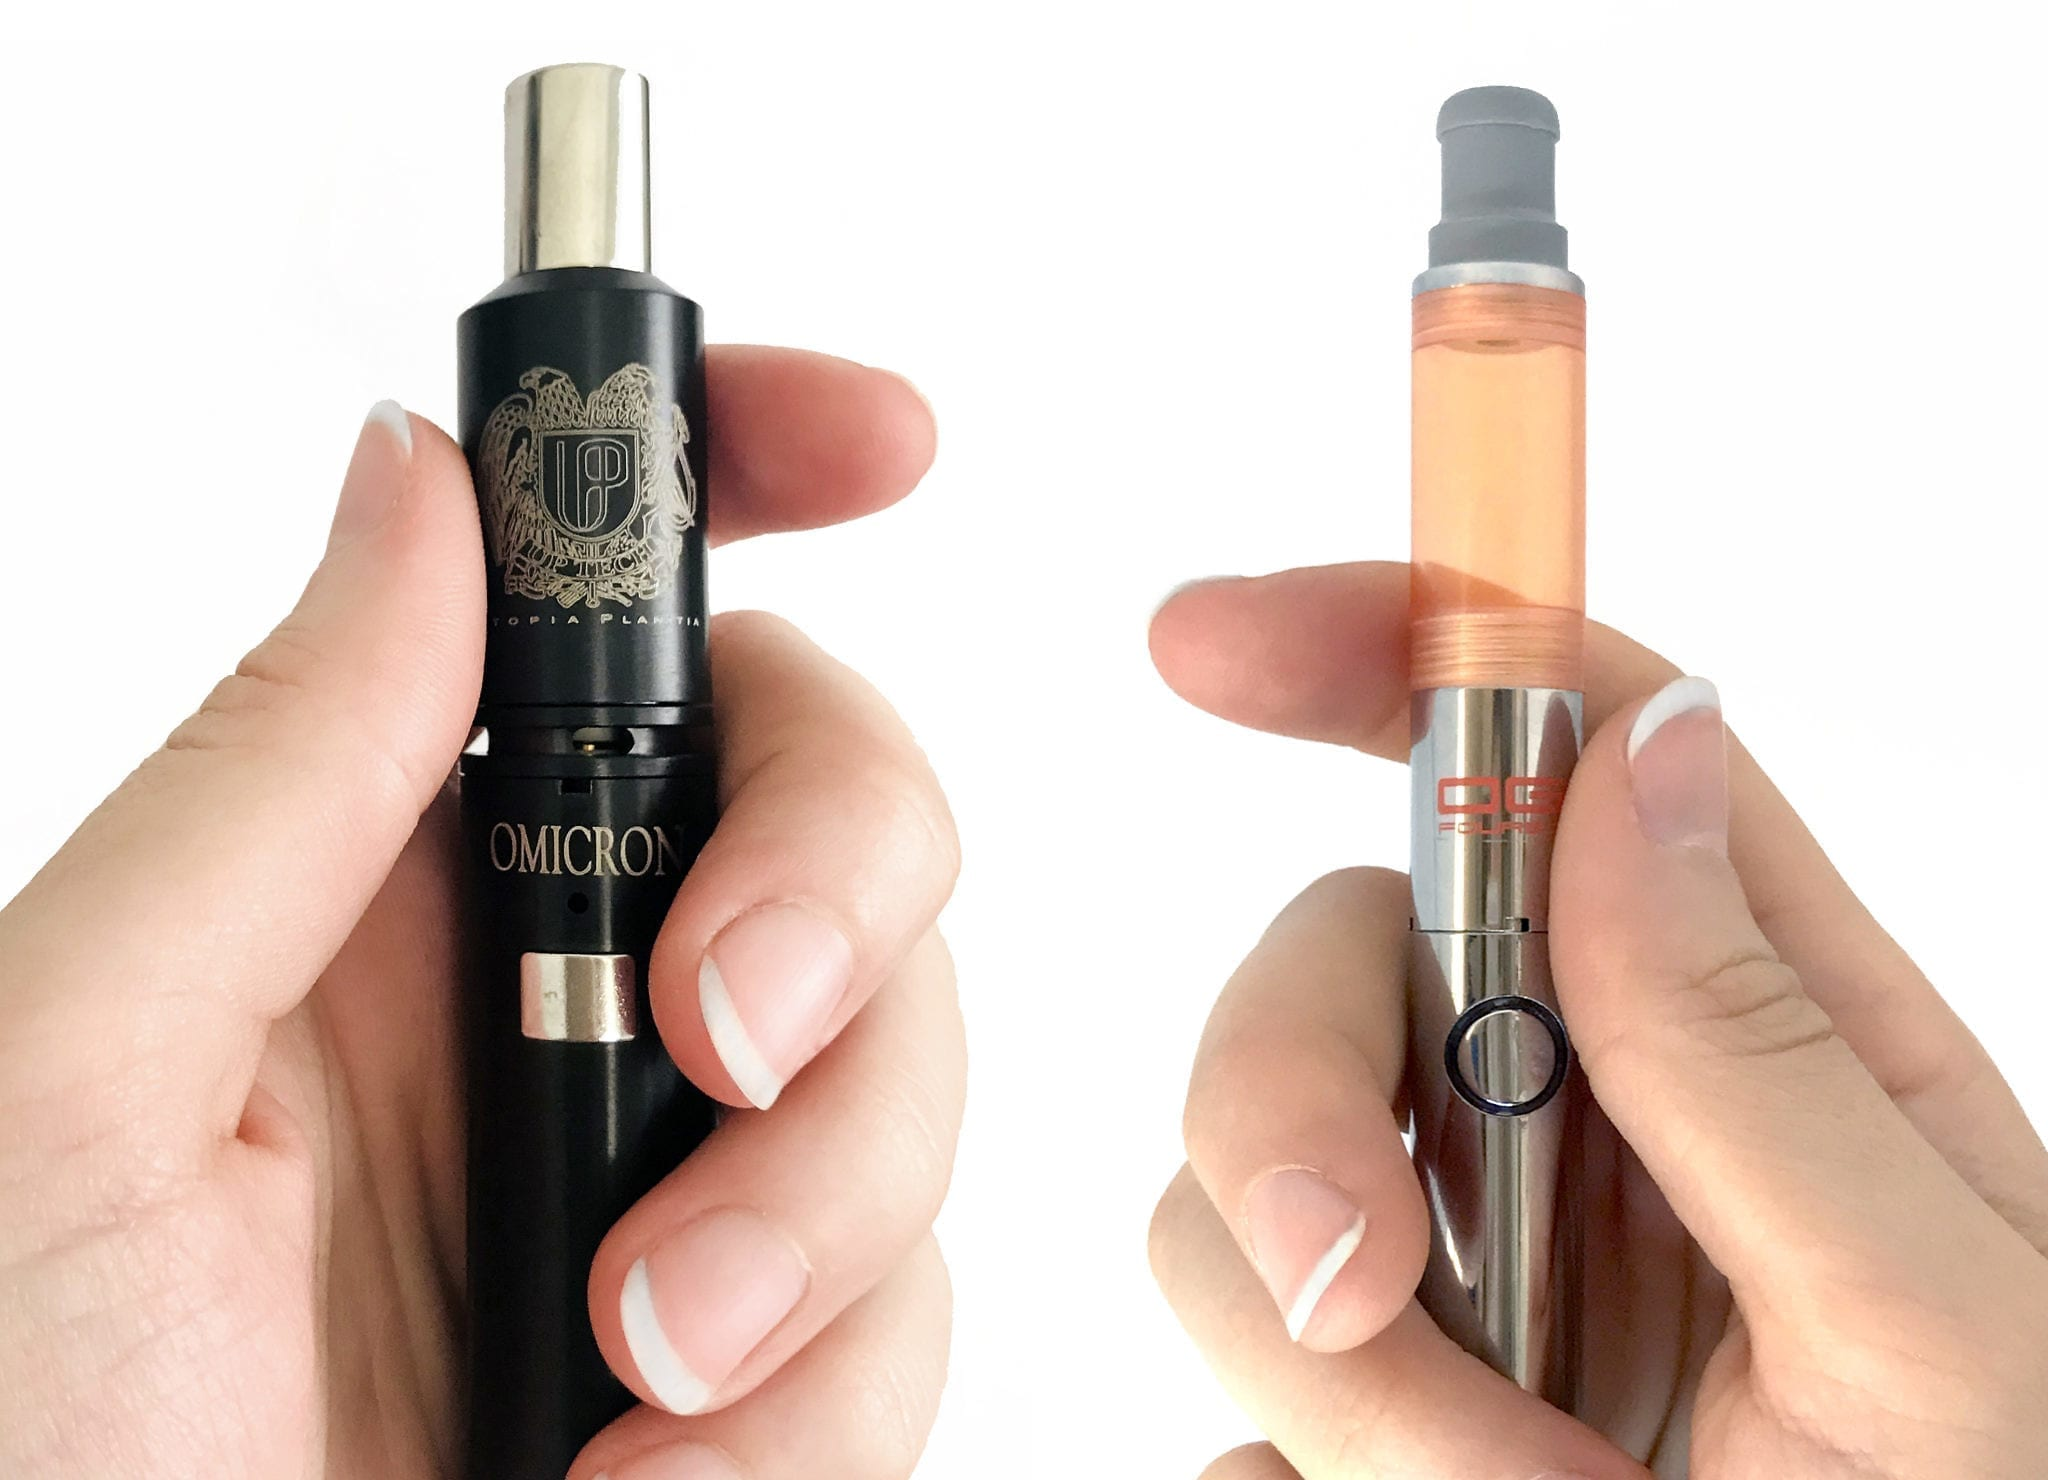 Delta9 Omicron Lite Vaporizer - Black Kiss Cartridge